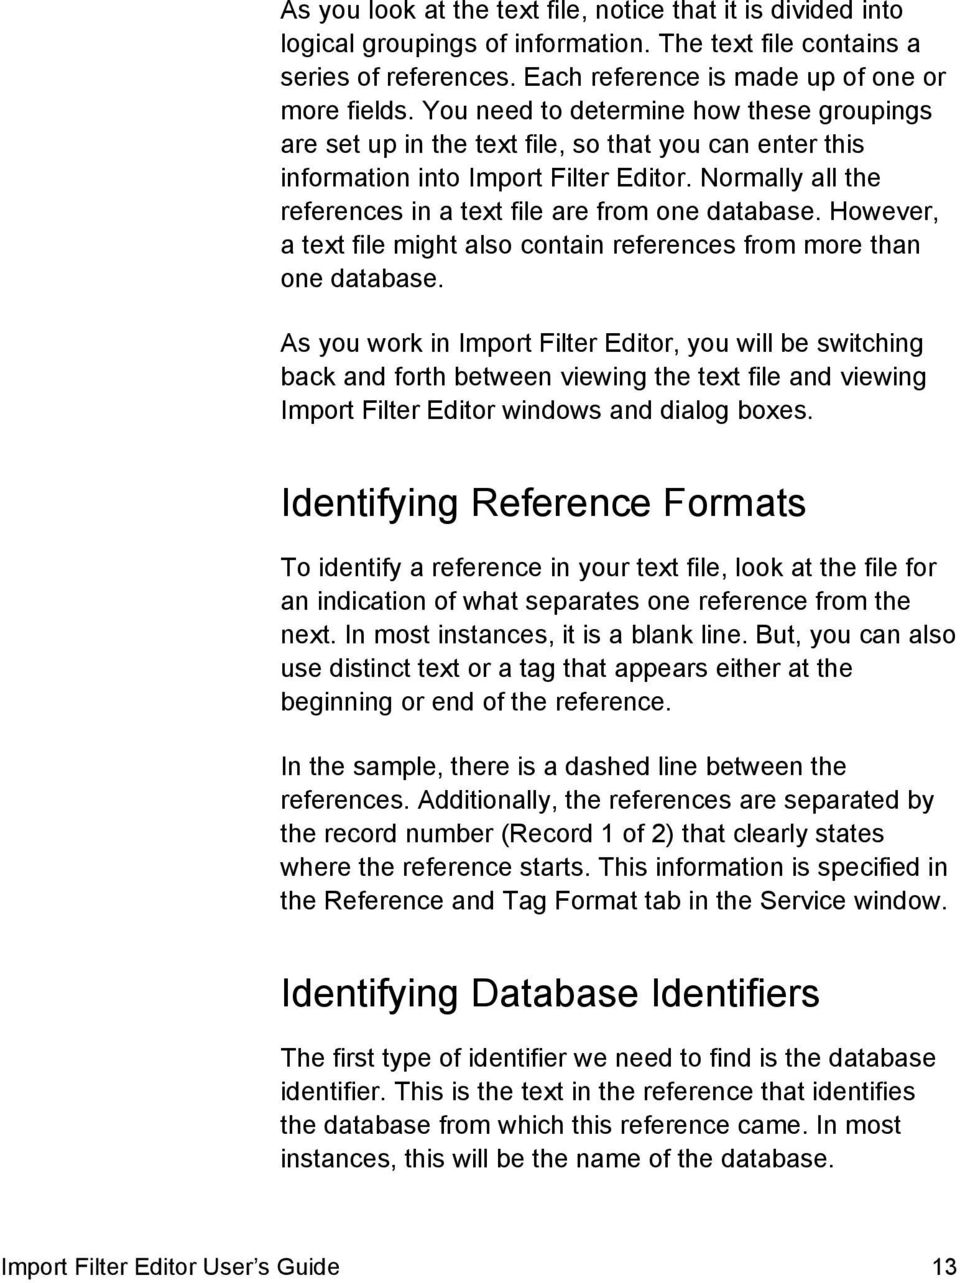 Normally all the references in a text file are from one database. However, a text file might also contain references from more than one database.